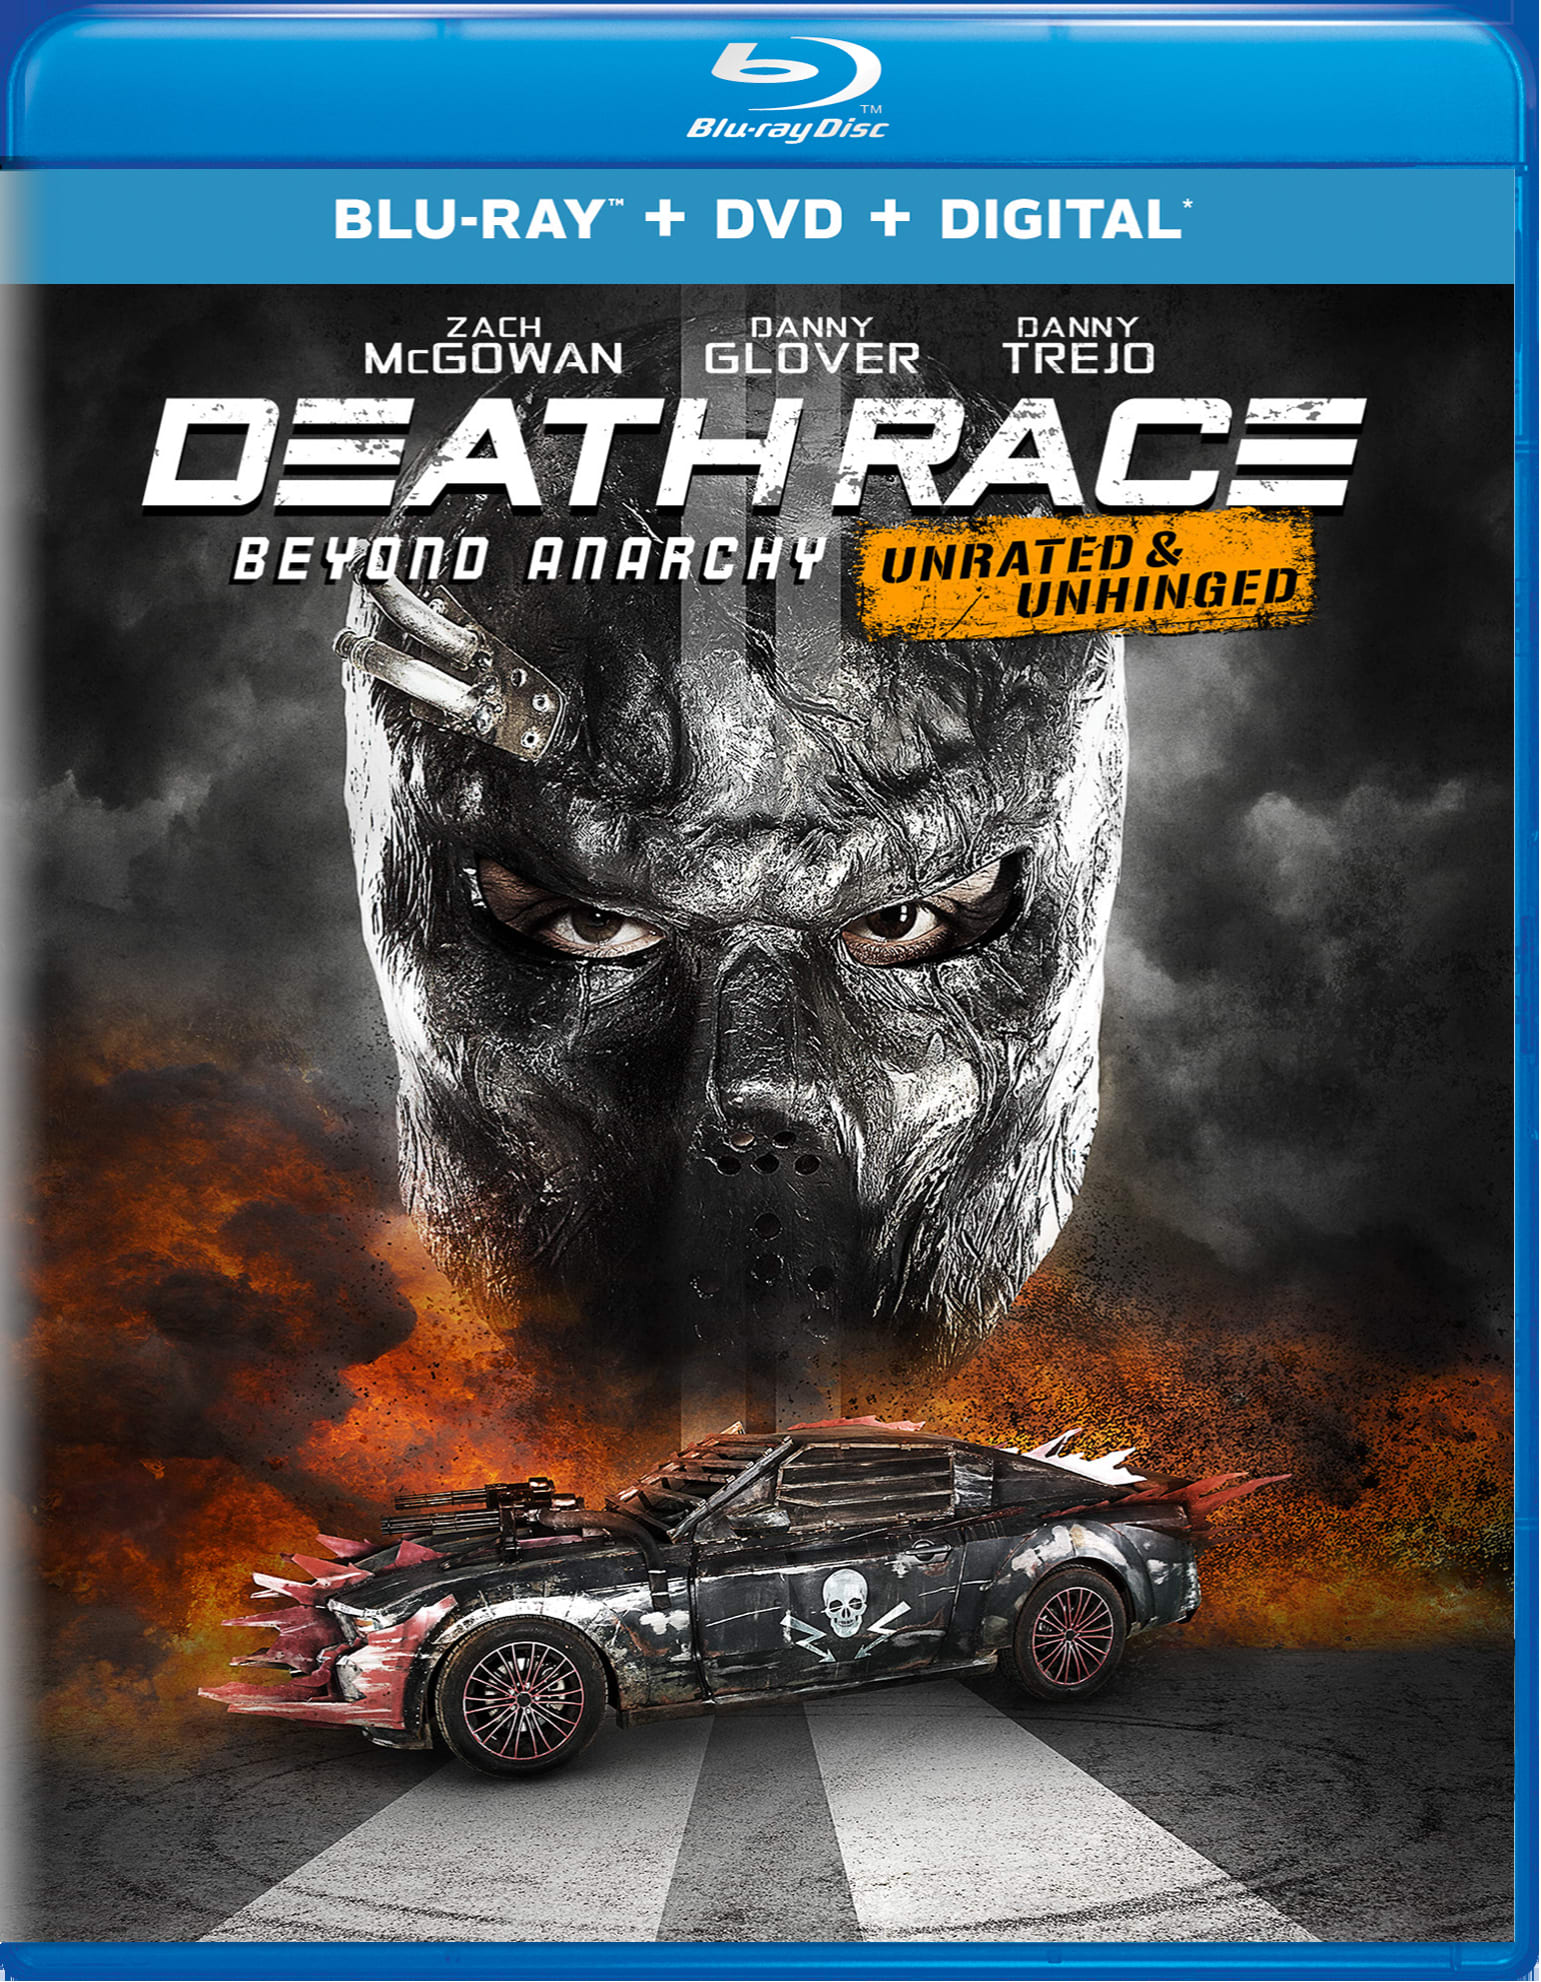 Death Race: Beyond Anarchy (Unrated & Unhinged DVD + Digital) [Blu-ray]